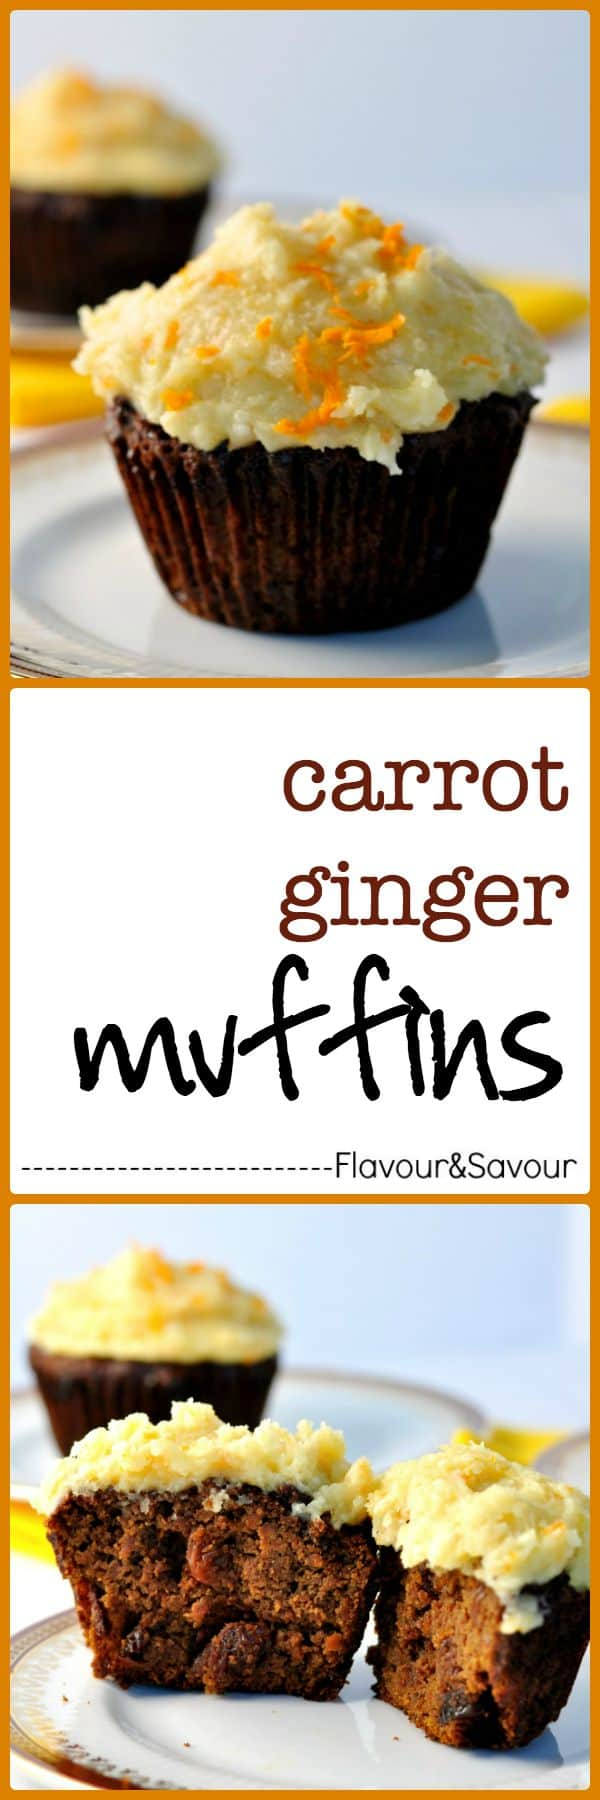 Gluten-free, dairy-free, refined-sugar free Carrot-Ginger Muffins. Paleo. These rise beautifully and are tender, sweet, and moist.